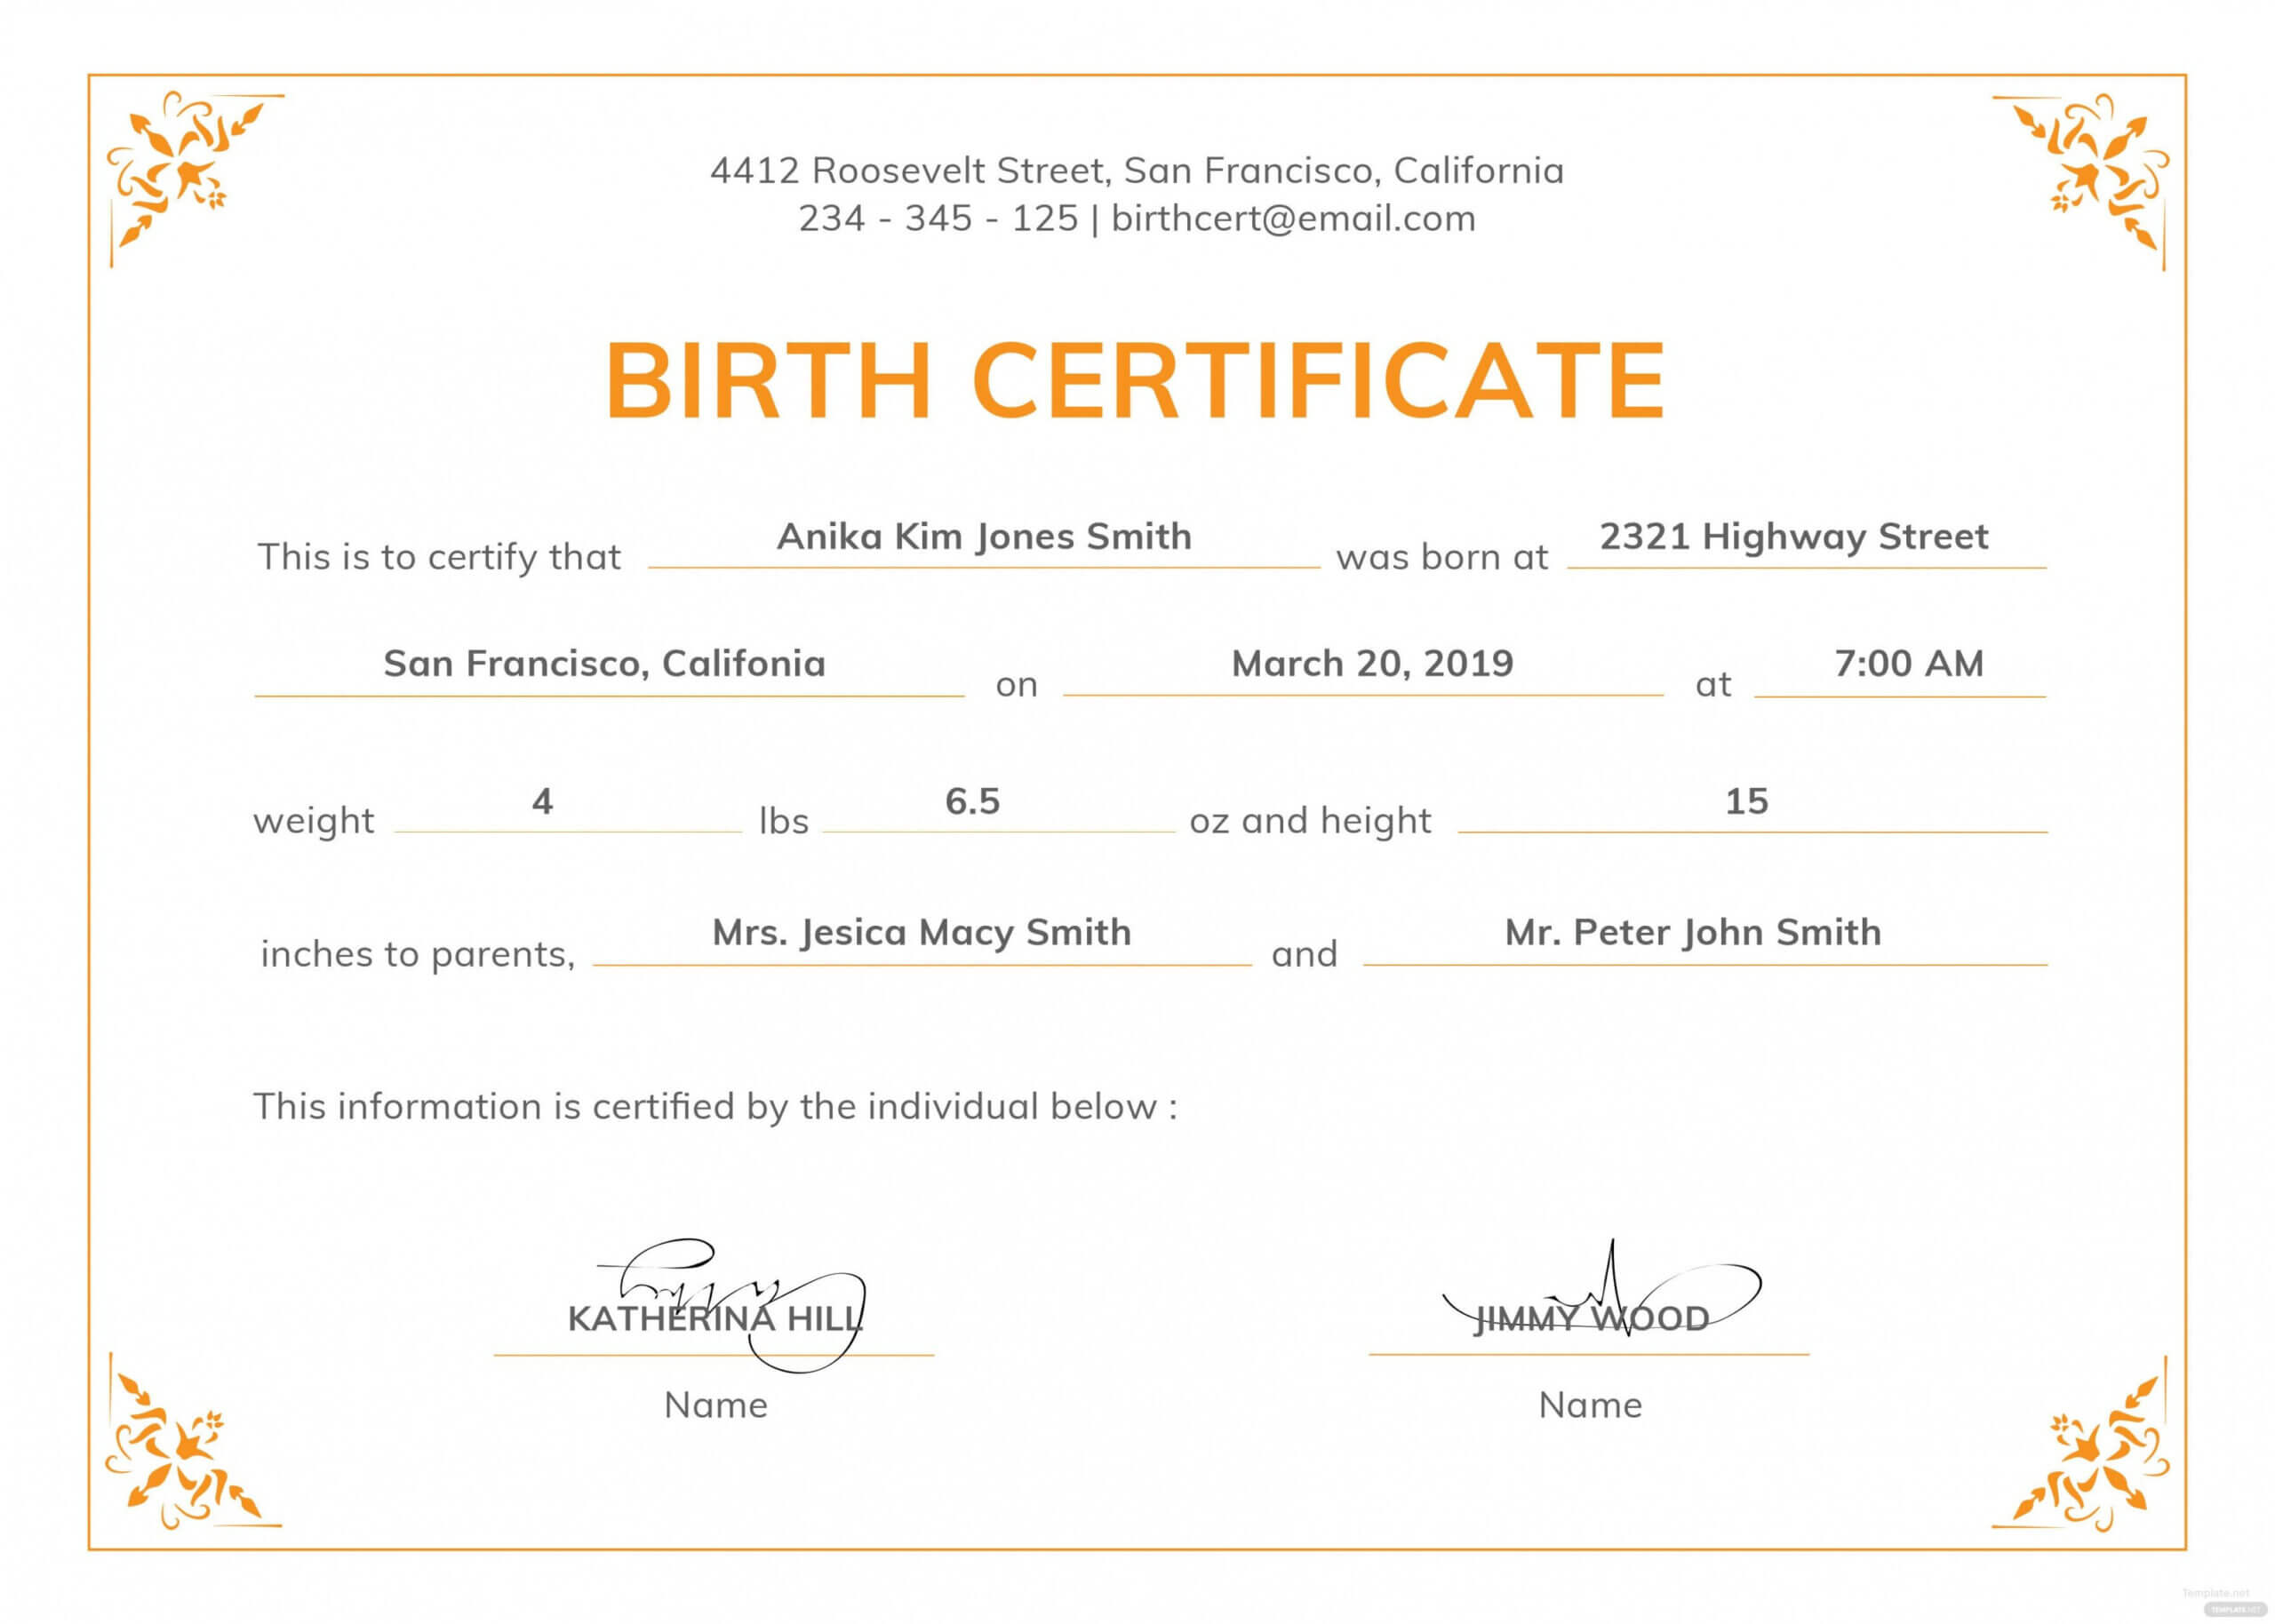 Editable Template For Birth Certificate Macopalmexco With Editable Birth Certificate Template